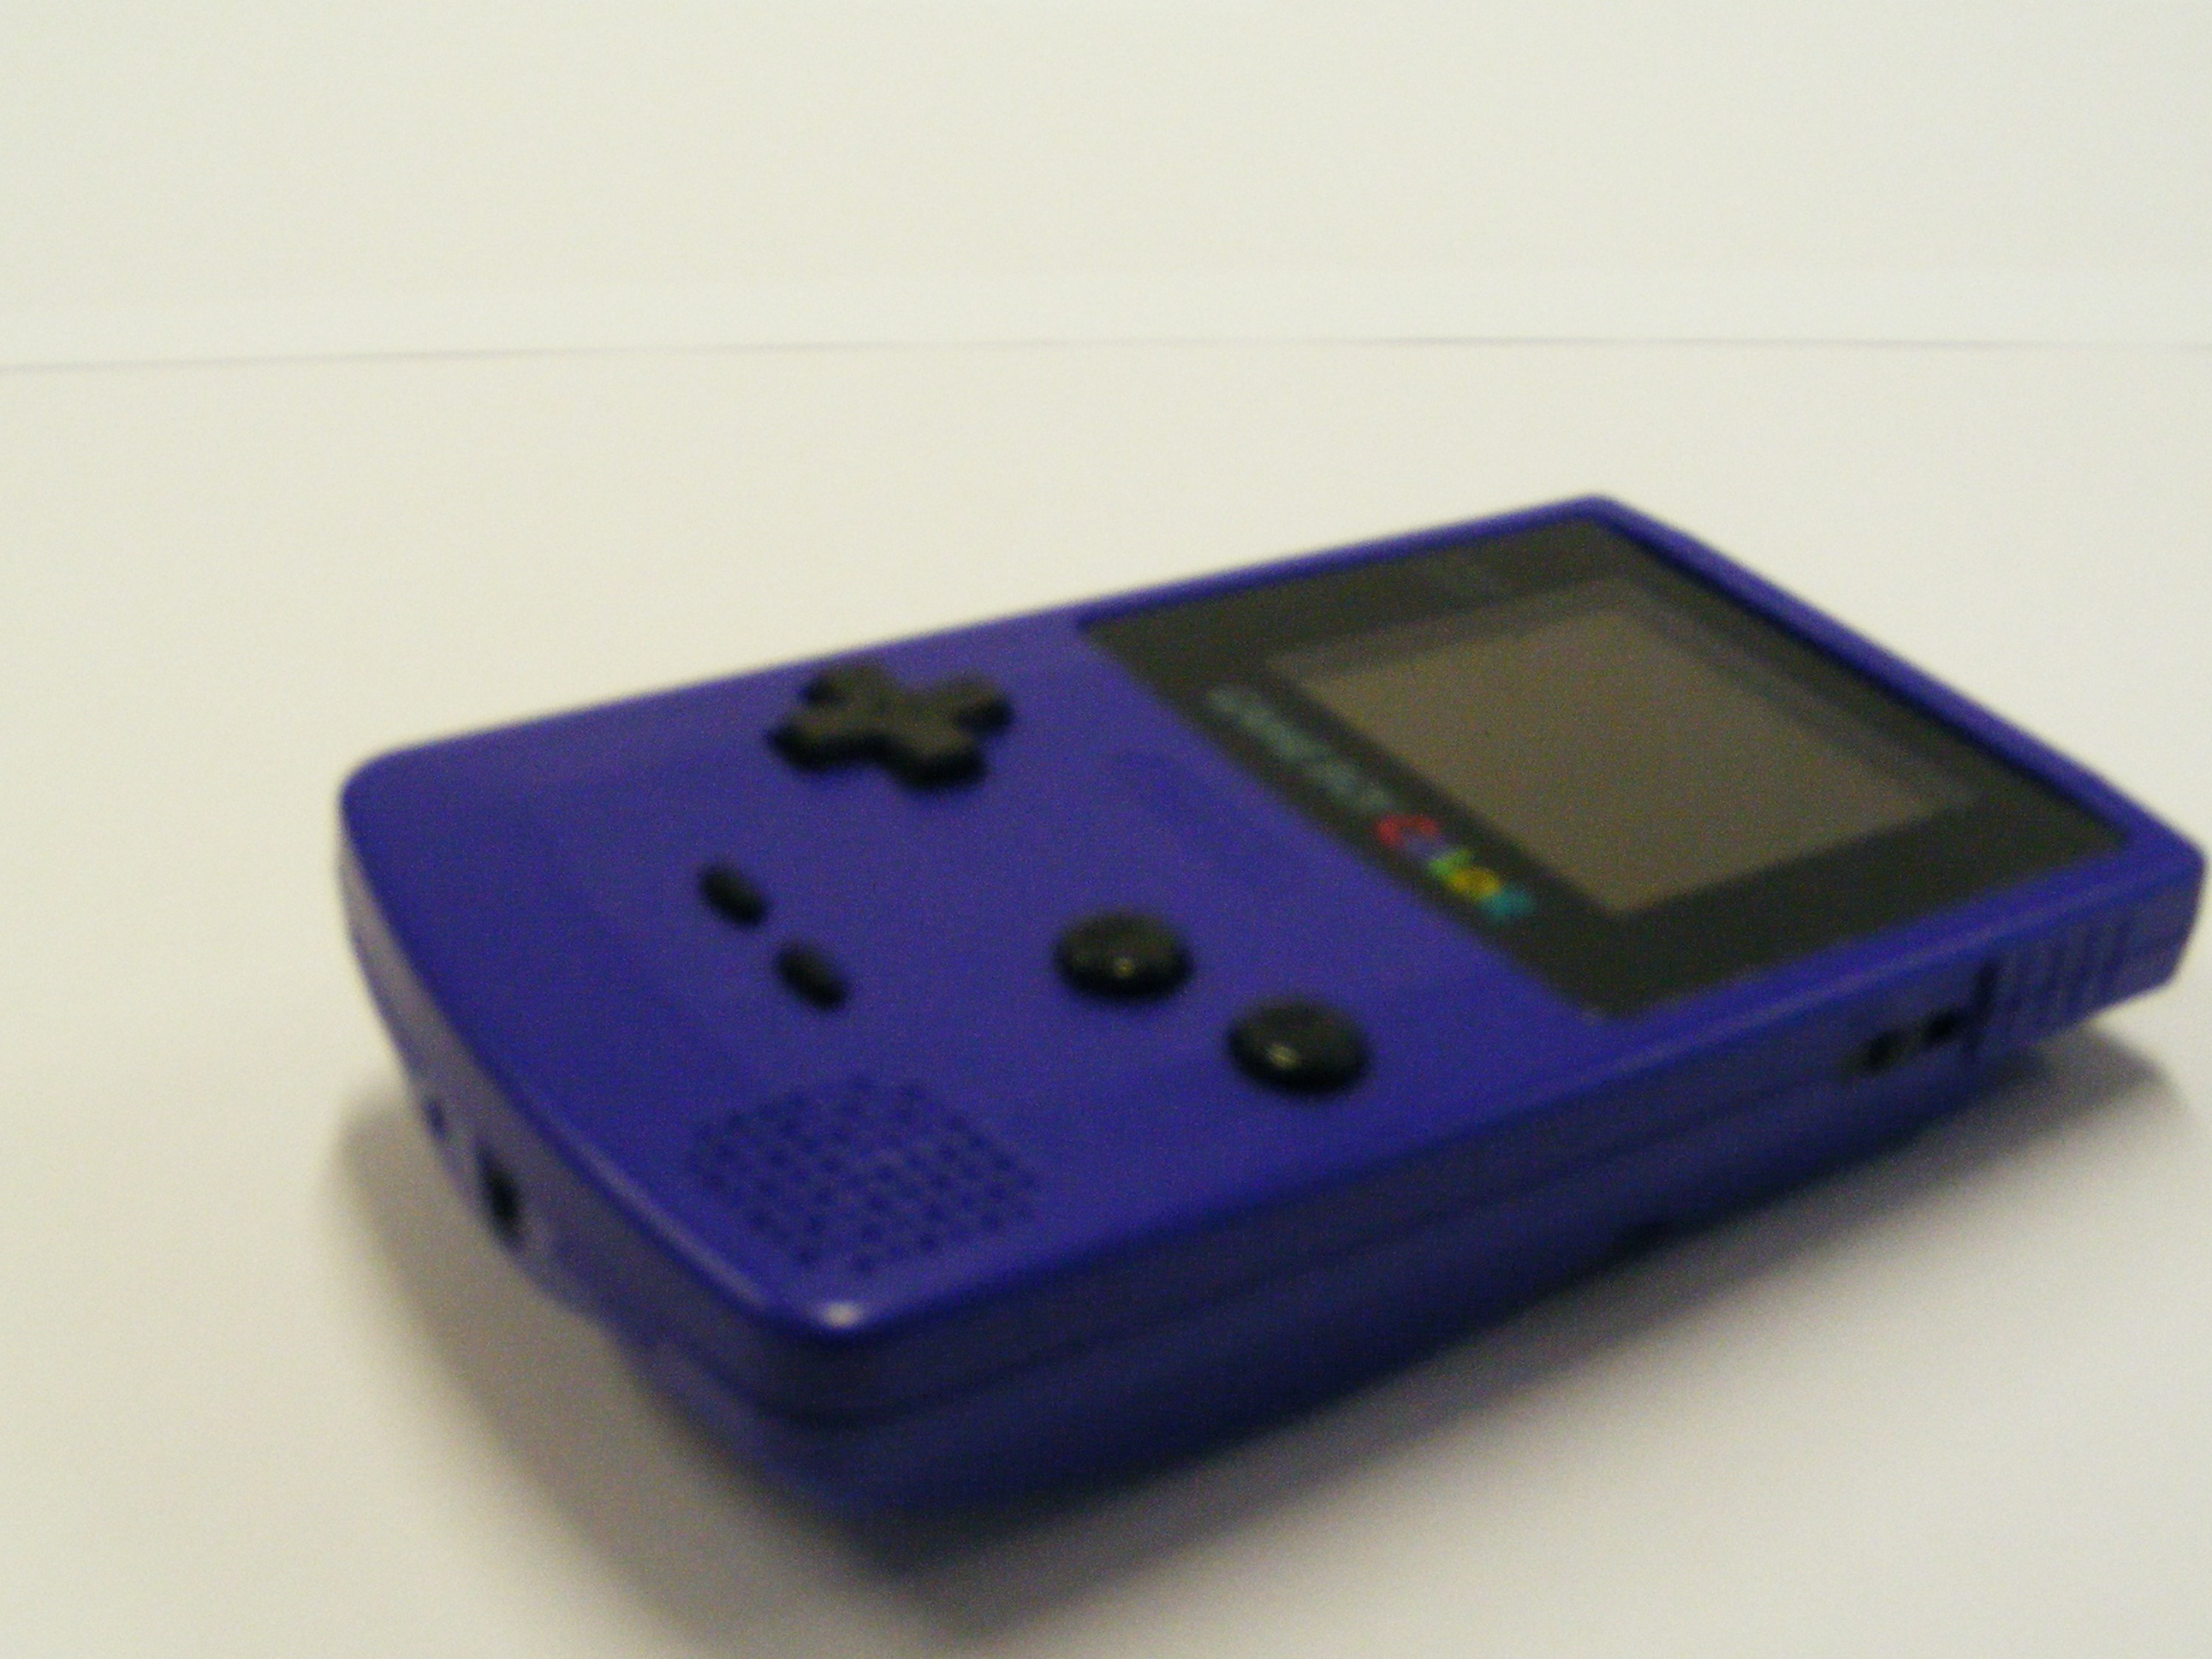 Game boy color link cable - Game Boy Color Teardown